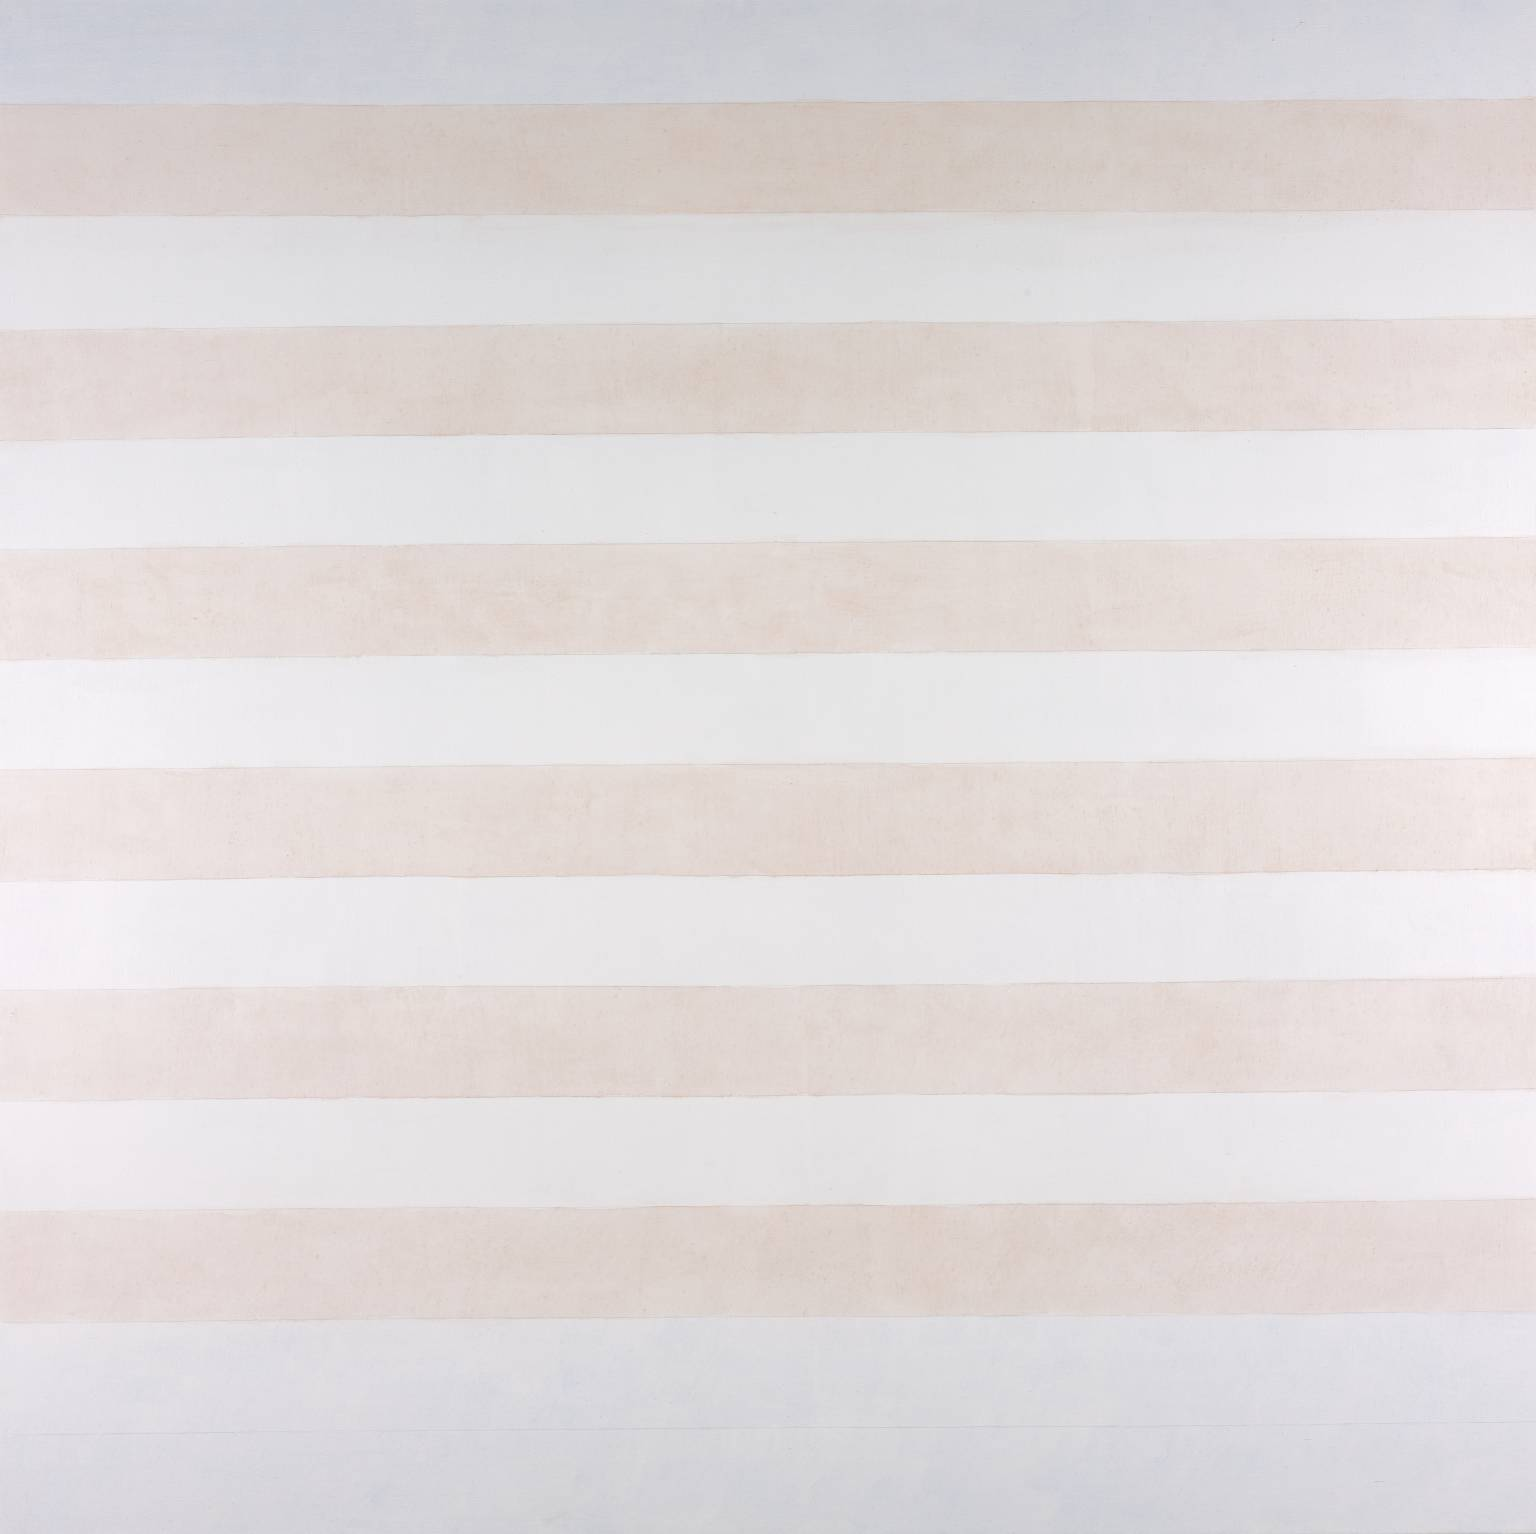 """""""Happy Holiday"""" by Agnes Martin"""